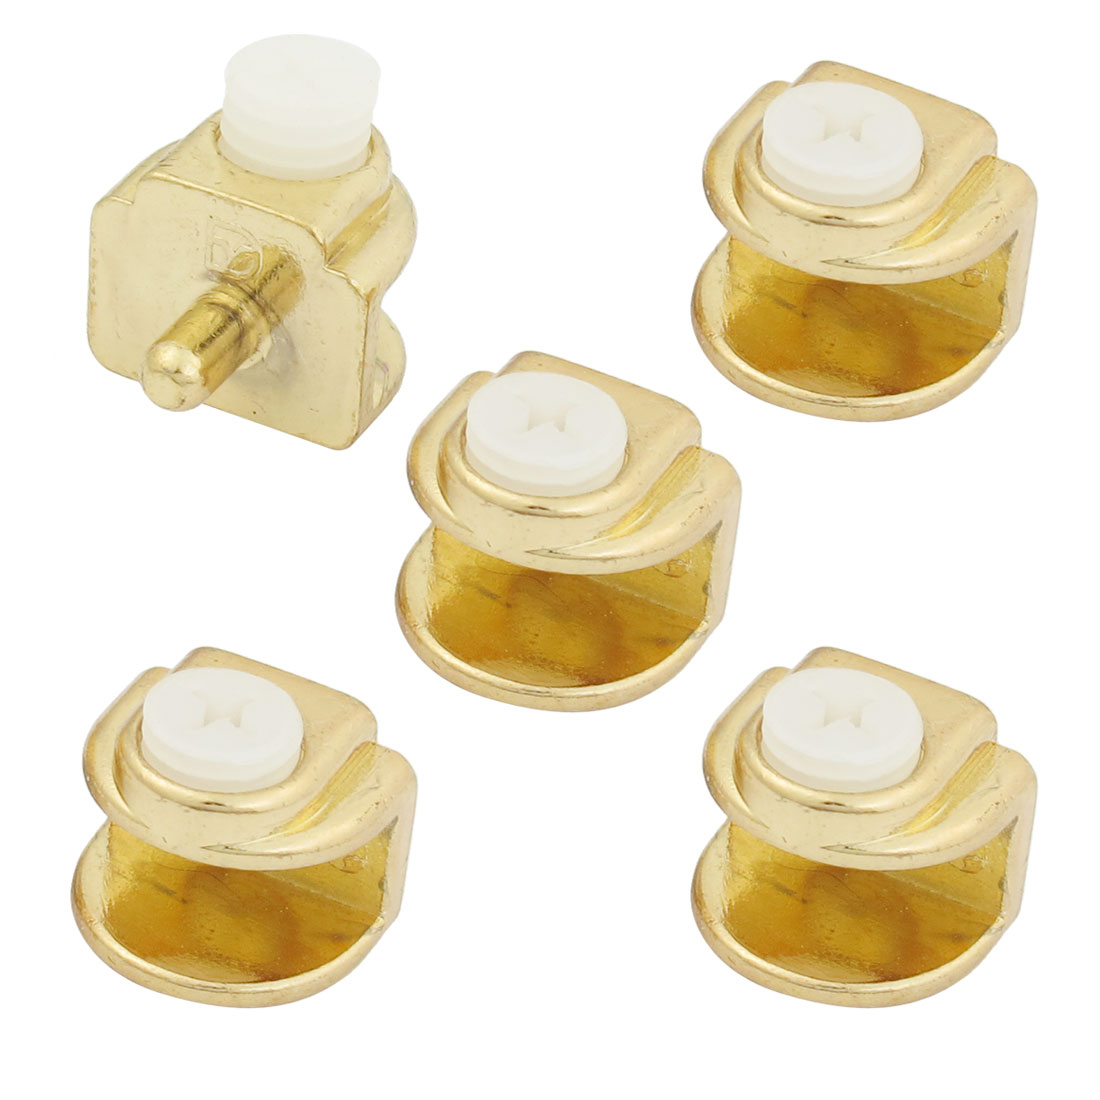 5 Pcs 4mm-8mm Thickness Screw Adjustable Gold Tone Glass Clips